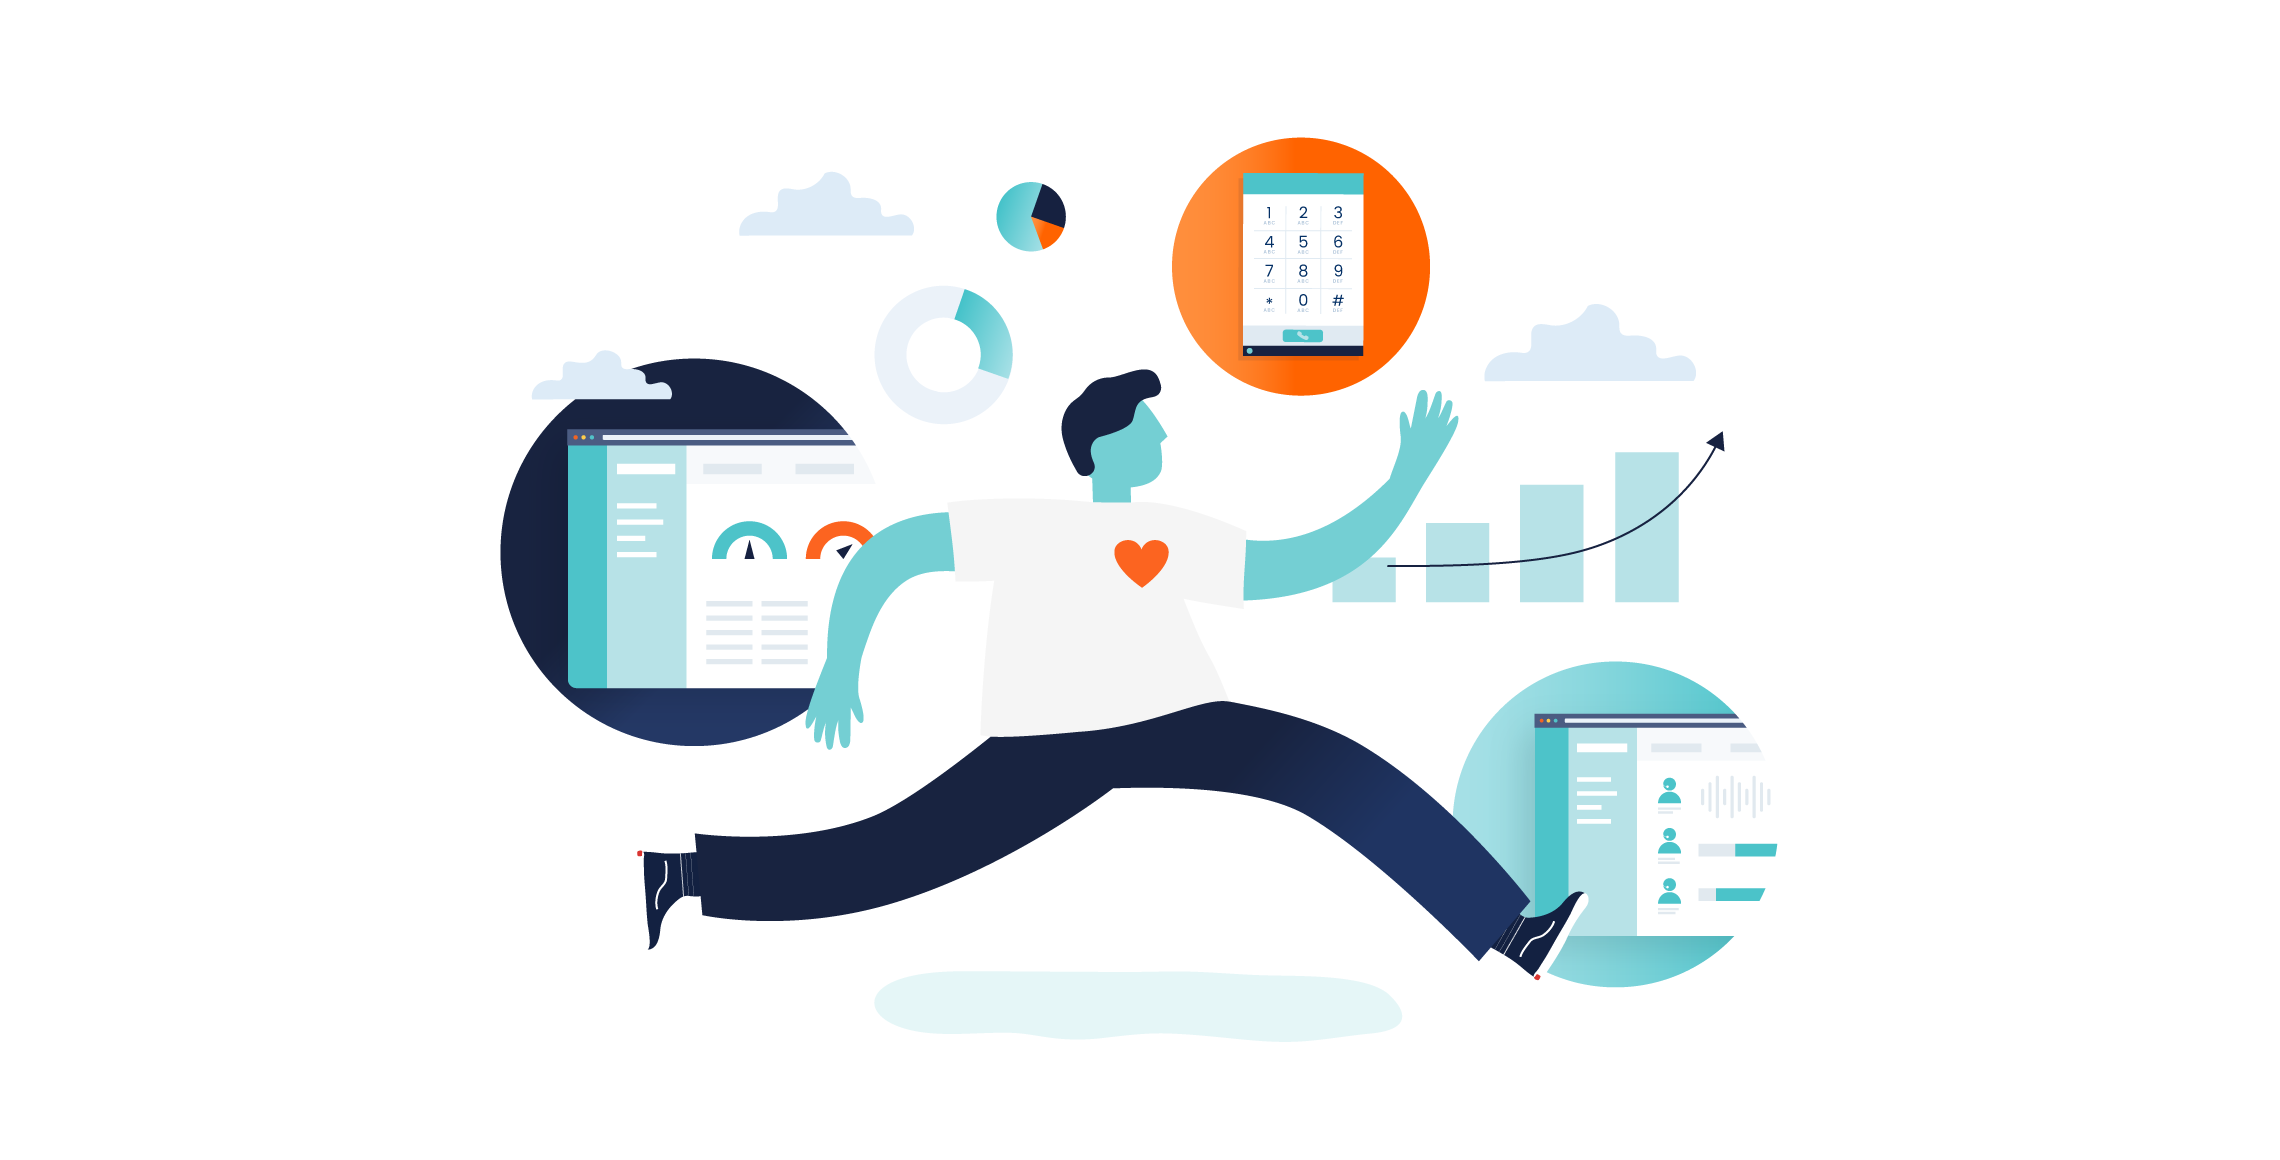 5 things we love about Talkdesk